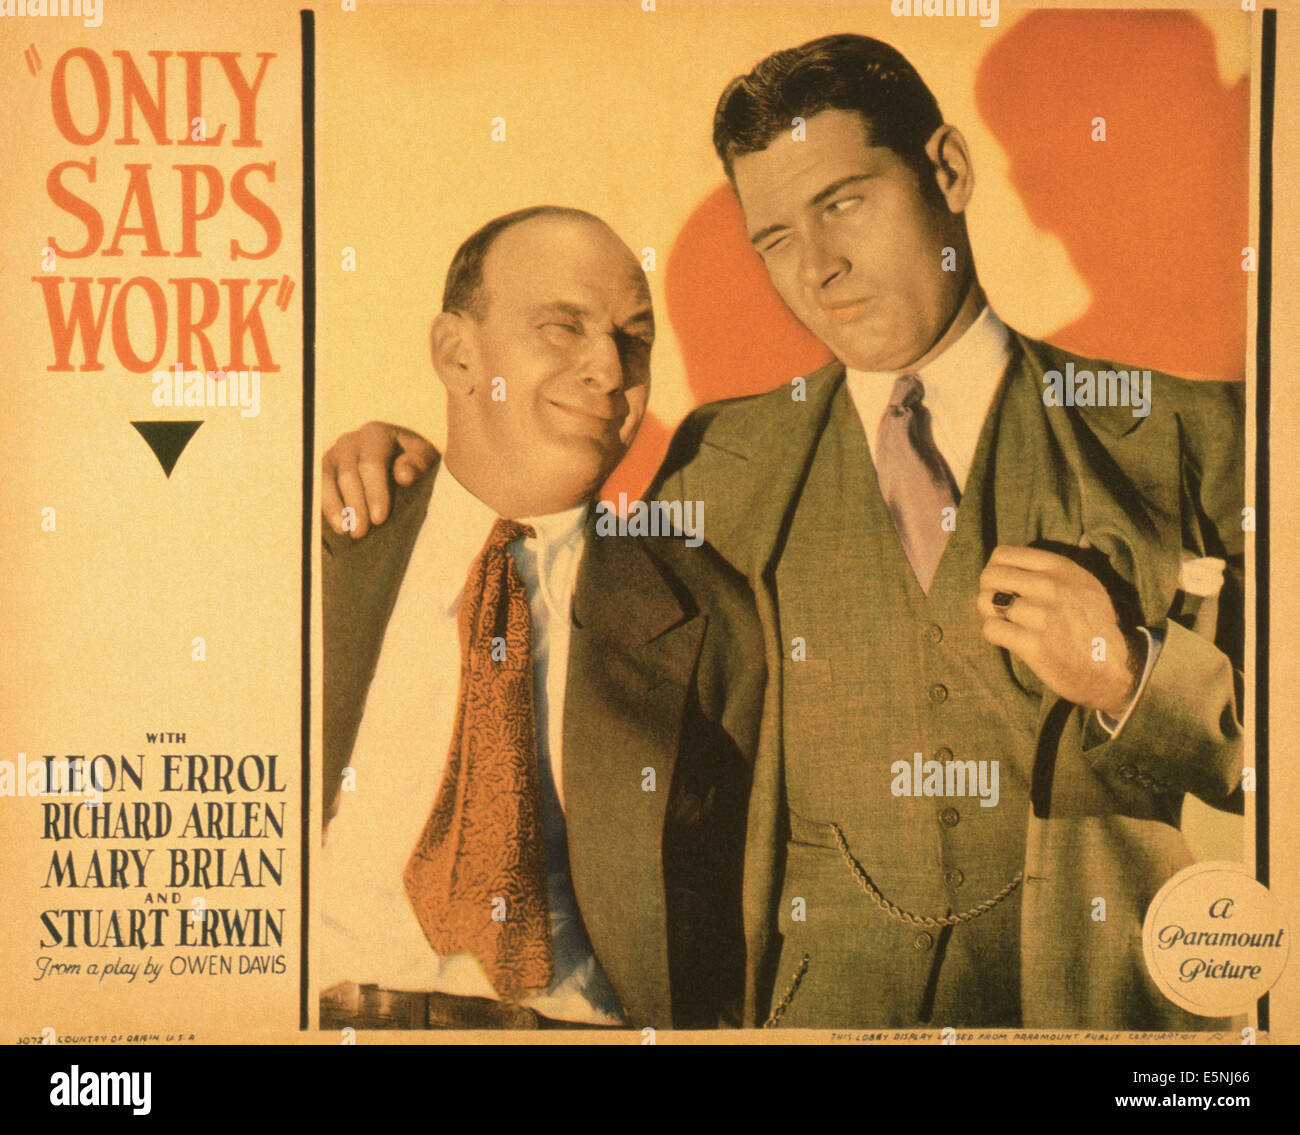 only-saps-work-us-lobbycard-from-left-le